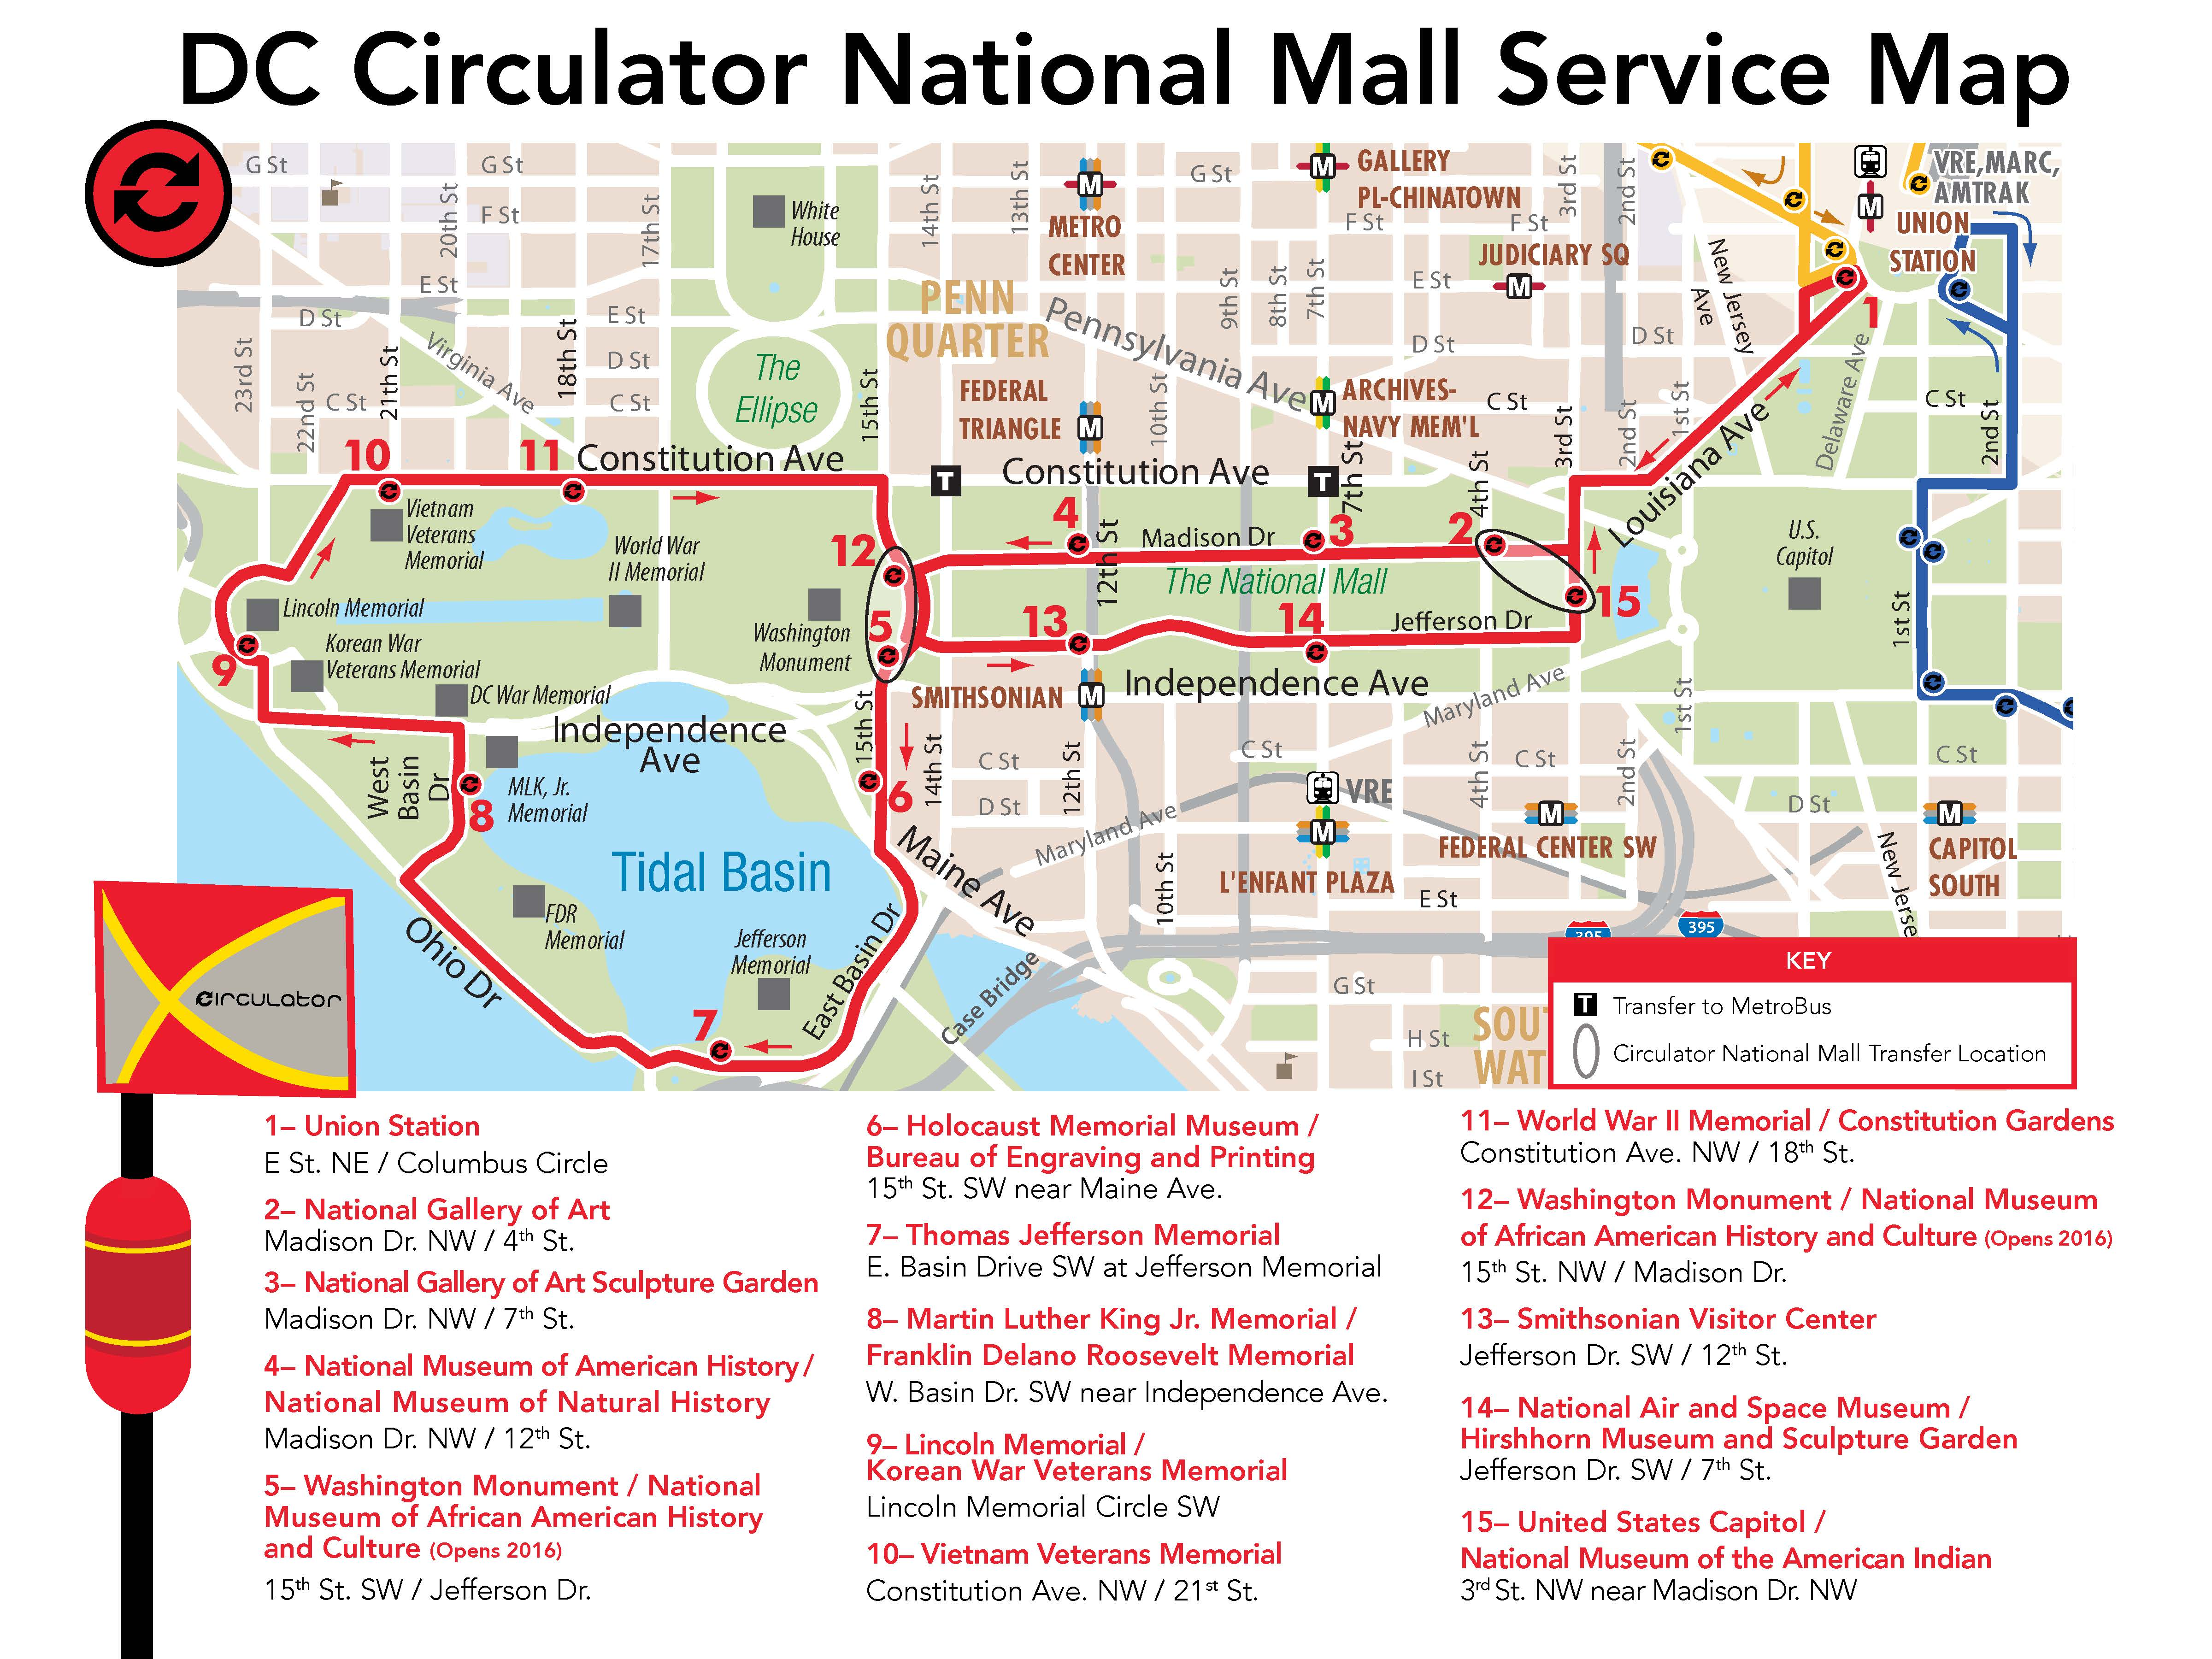 D.C. Circulator National Mall Route